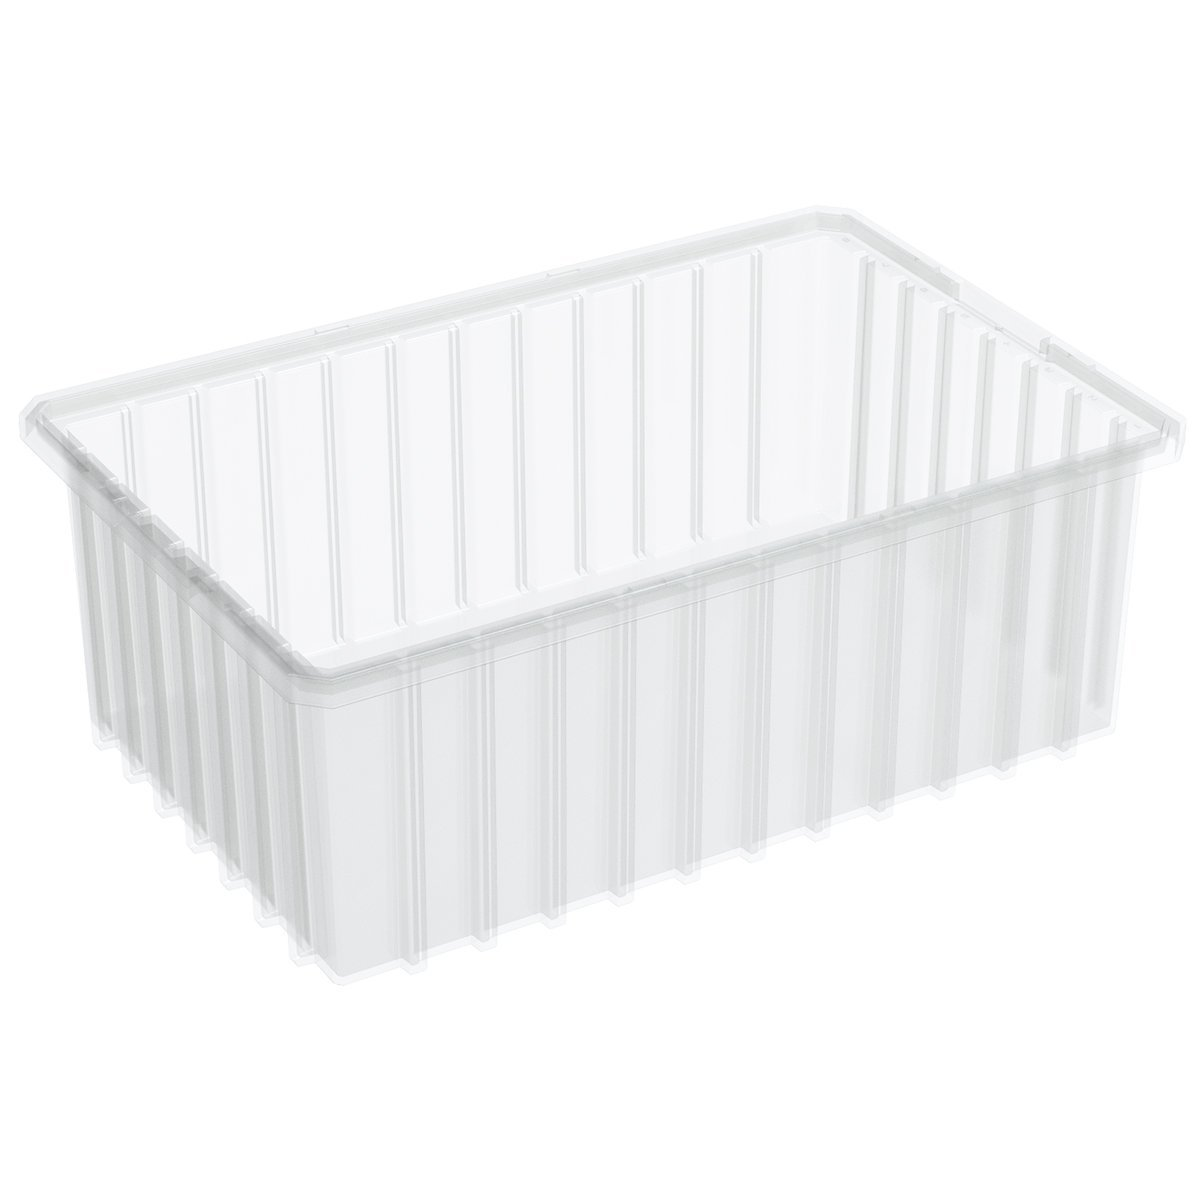 Akro-Mils 33166 16-1/2-InchL by 10-7/8-Inch W by 6-Inch H Clear Akro-Grid Slotted Divider Plastic Tote Box, 8-Pack